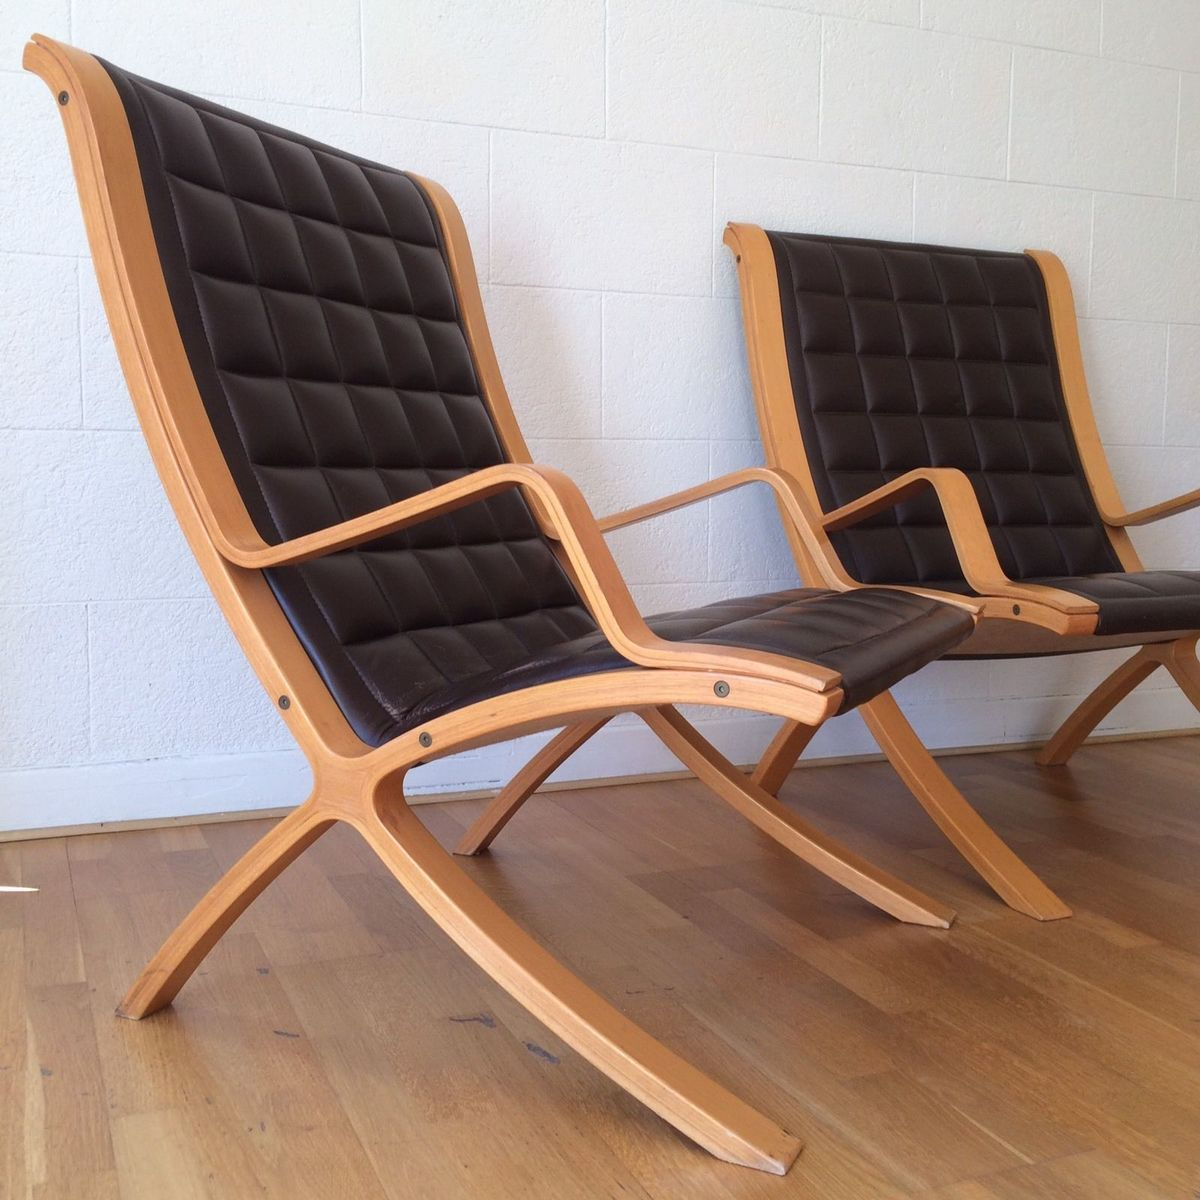 d nische vintage sessel von orla m lgaard nielsen f r fritz hansen 1980er 2er set bei pamono. Black Bedroom Furniture Sets. Home Design Ideas